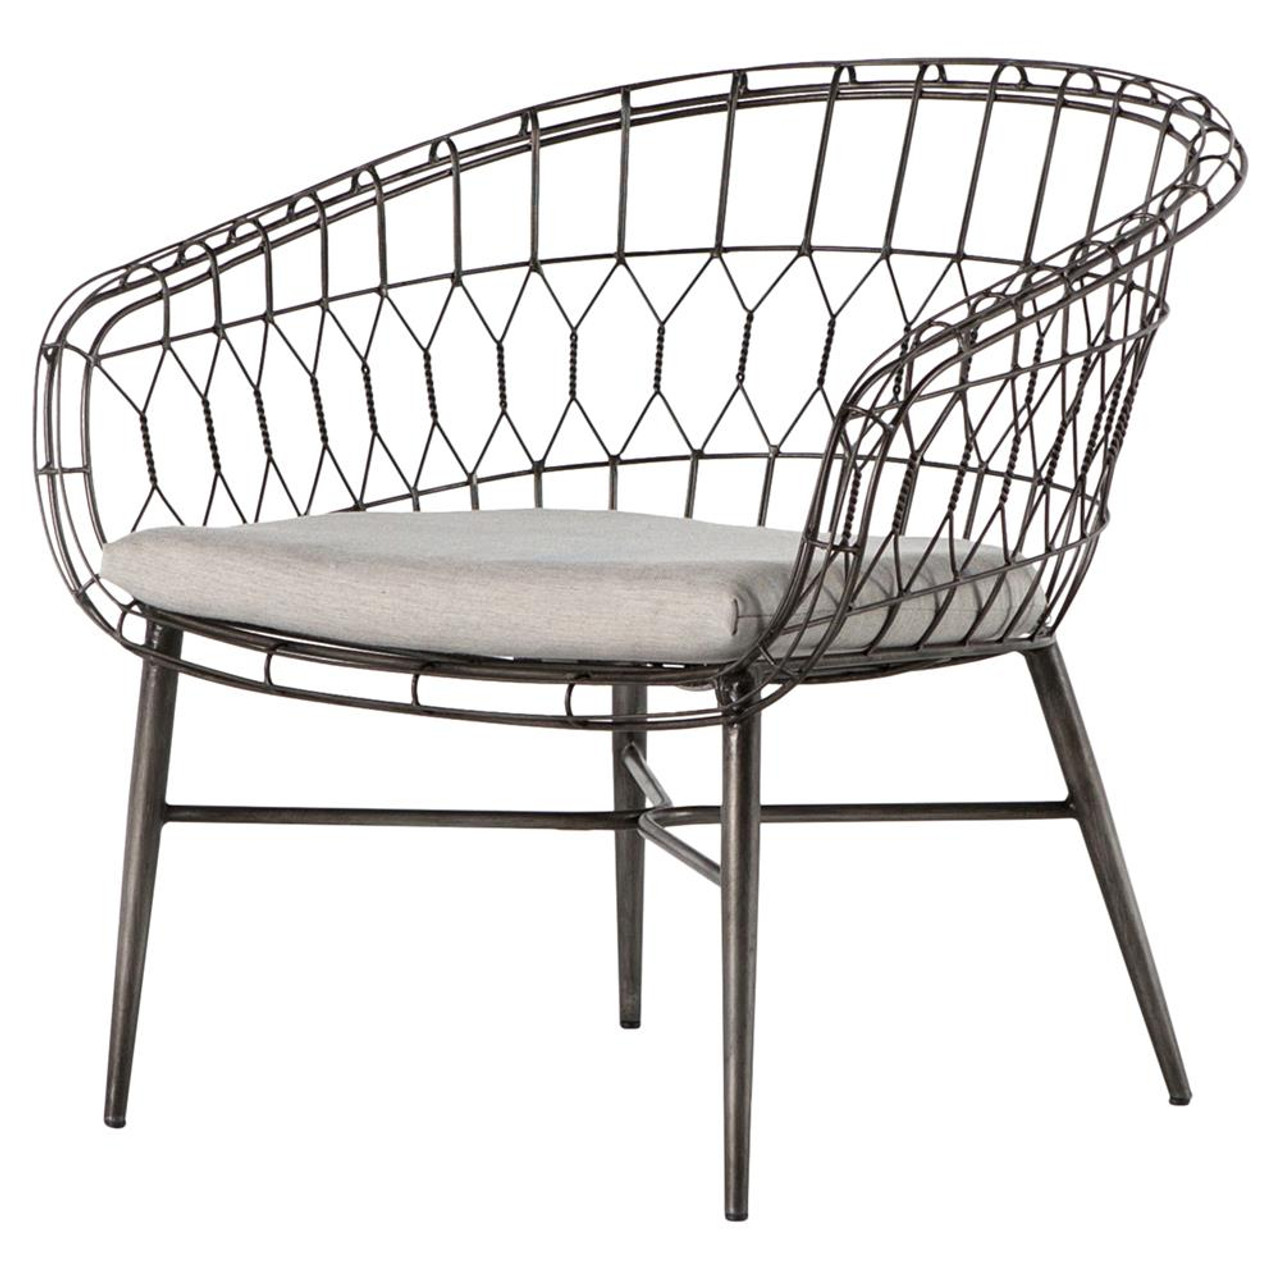 Pleasing Tubman Rounded Iron Rattan Outdoor Lounge Chair Alphanode Cool Chair Designs And Ideas Alphanodeonline